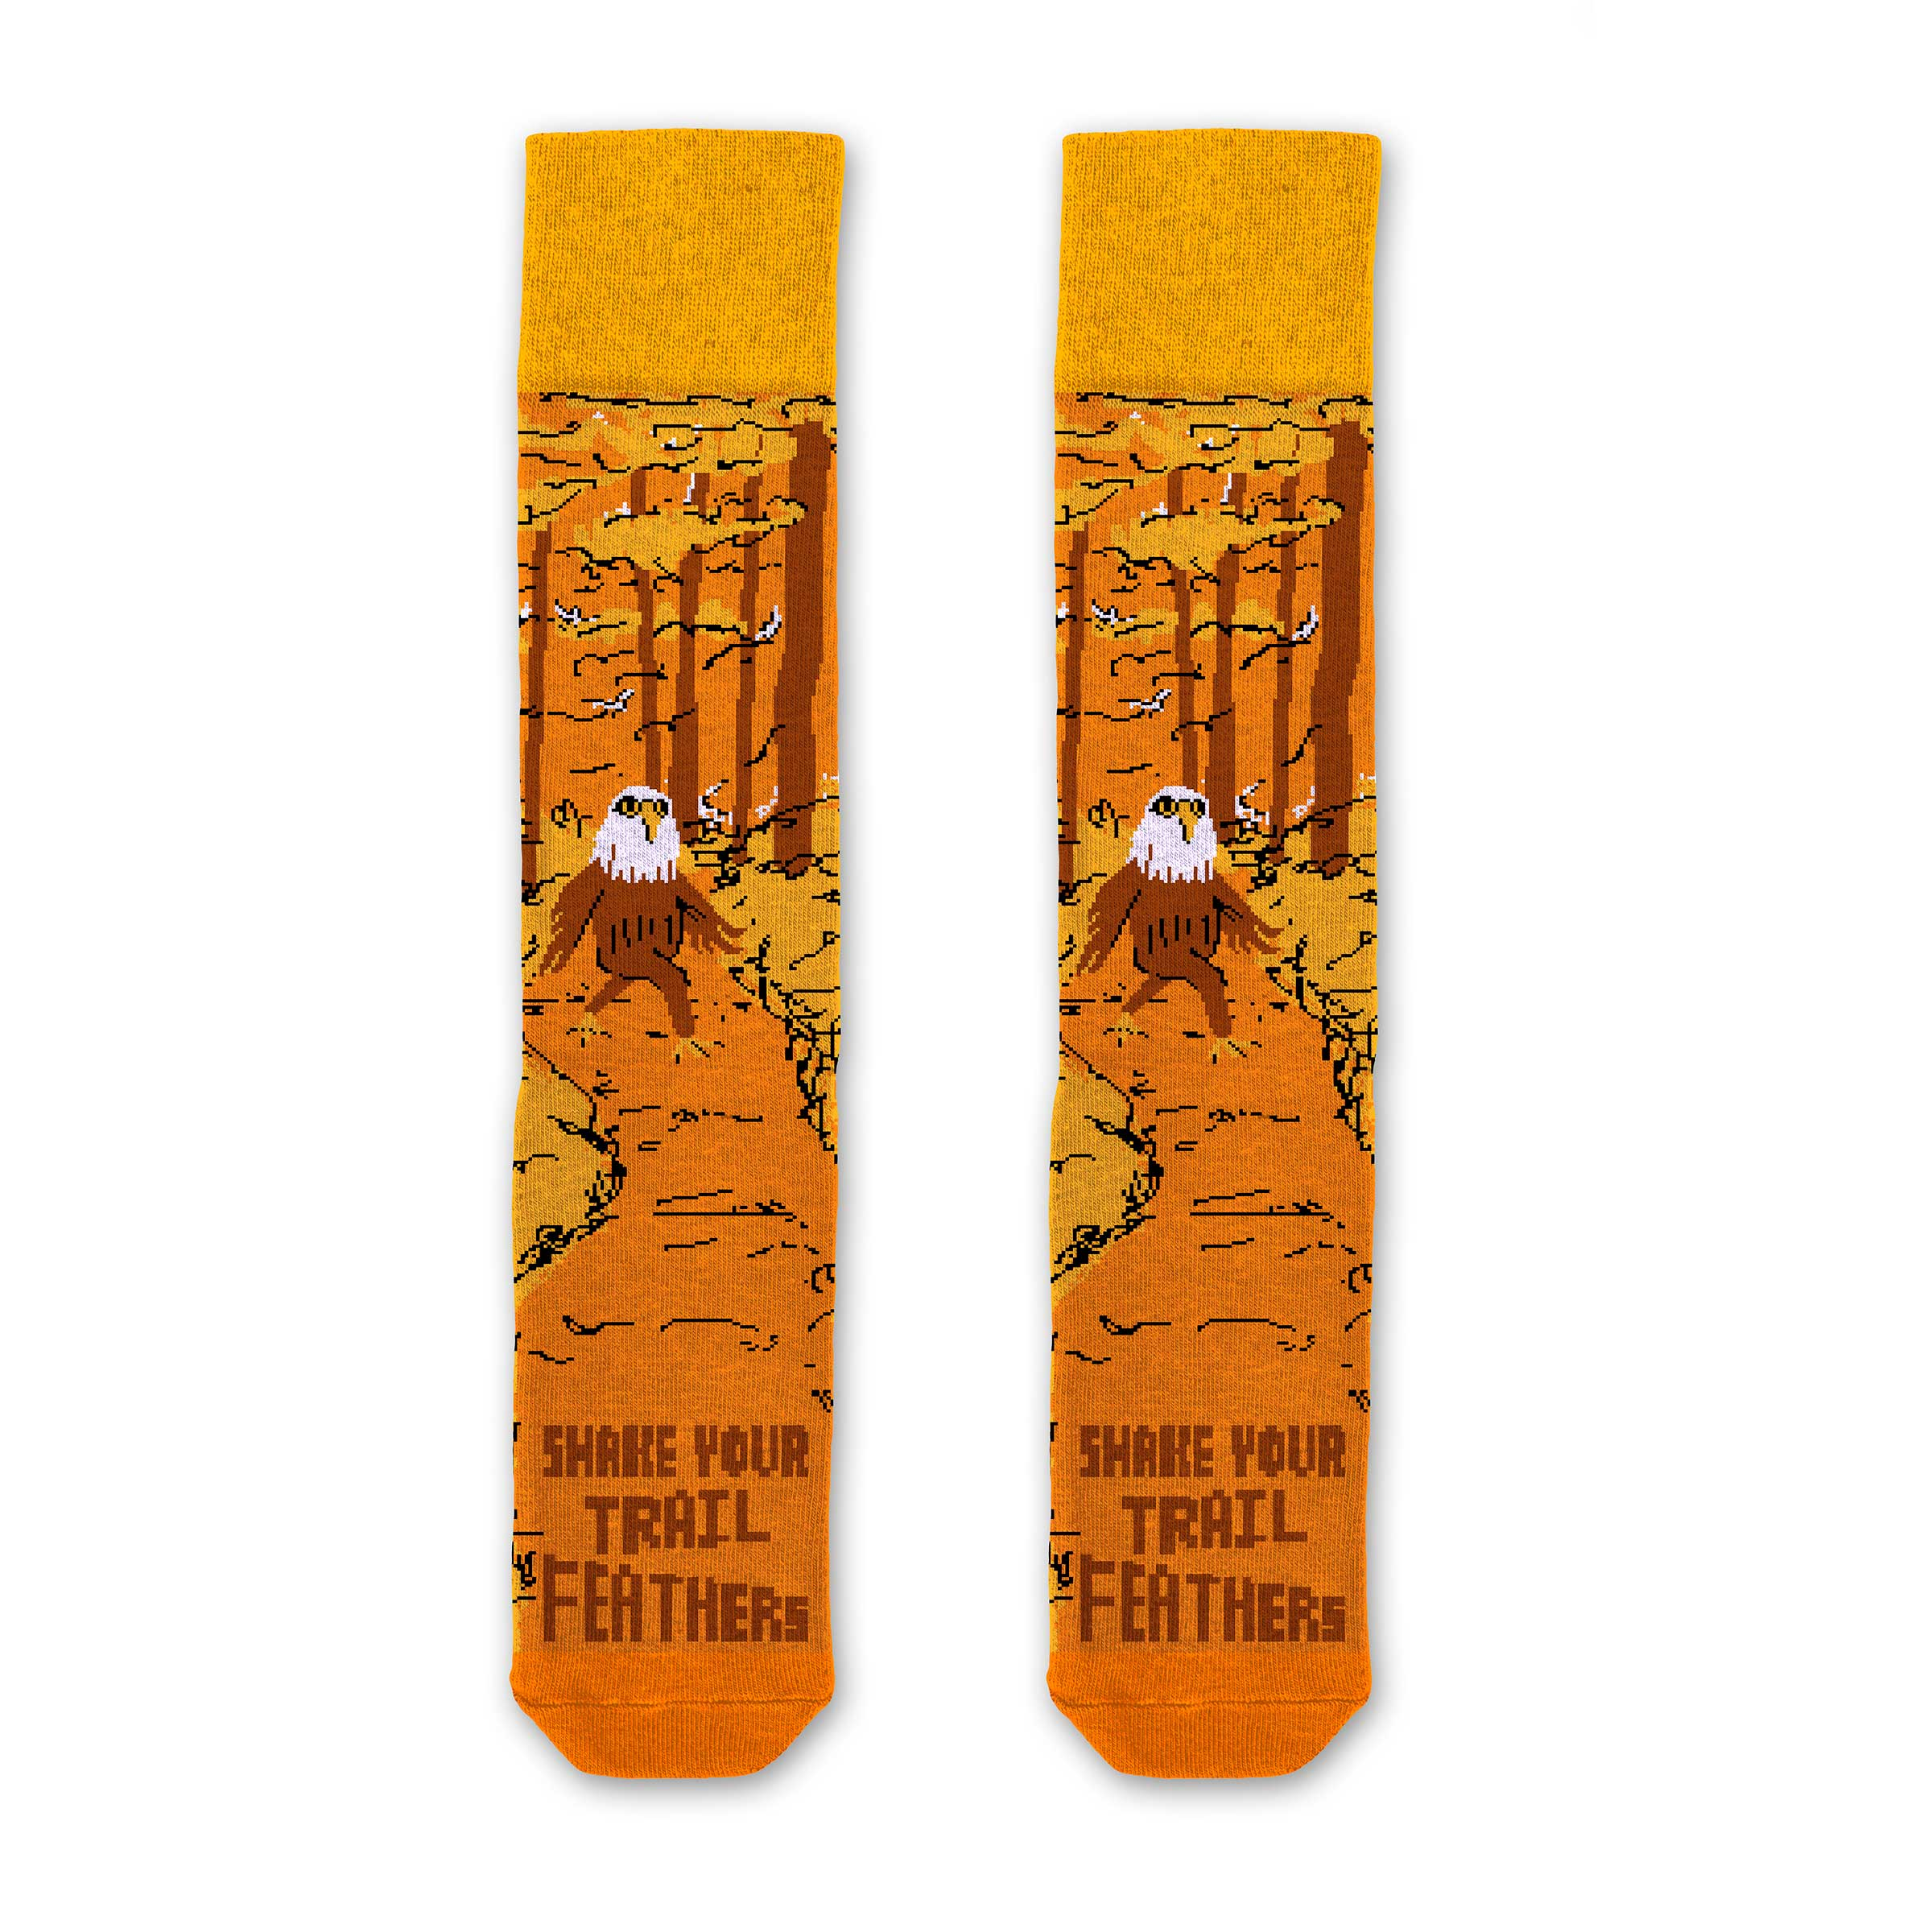 Shake Your Trailfeathers Socks | Parks Project | National Park Socks